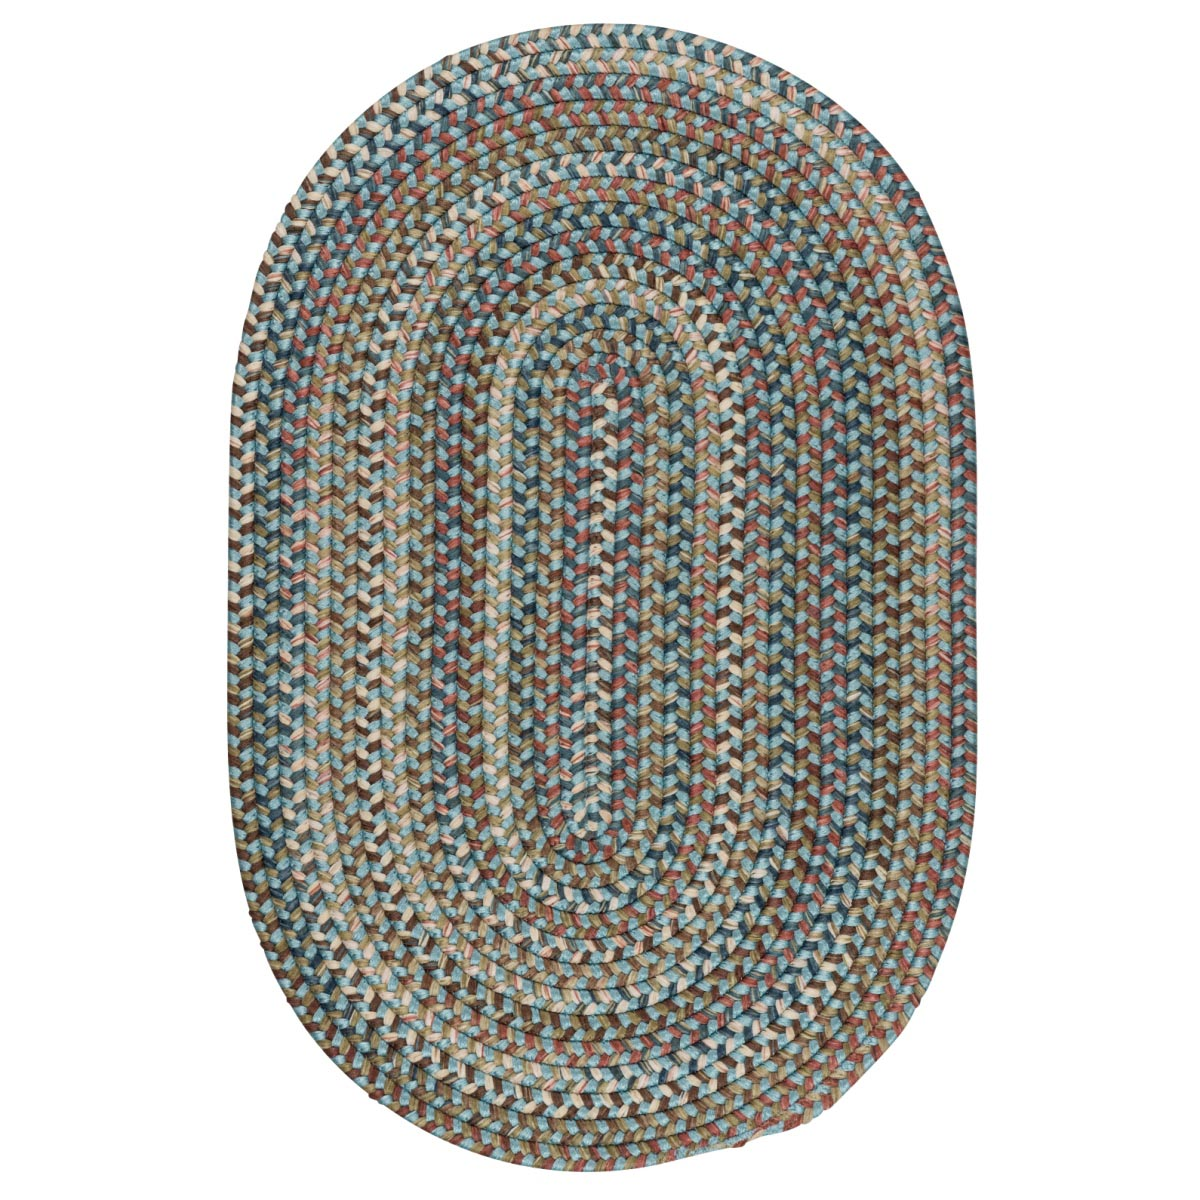 Cedar Cove Light Blue Outdoor Braided Oval Rugs